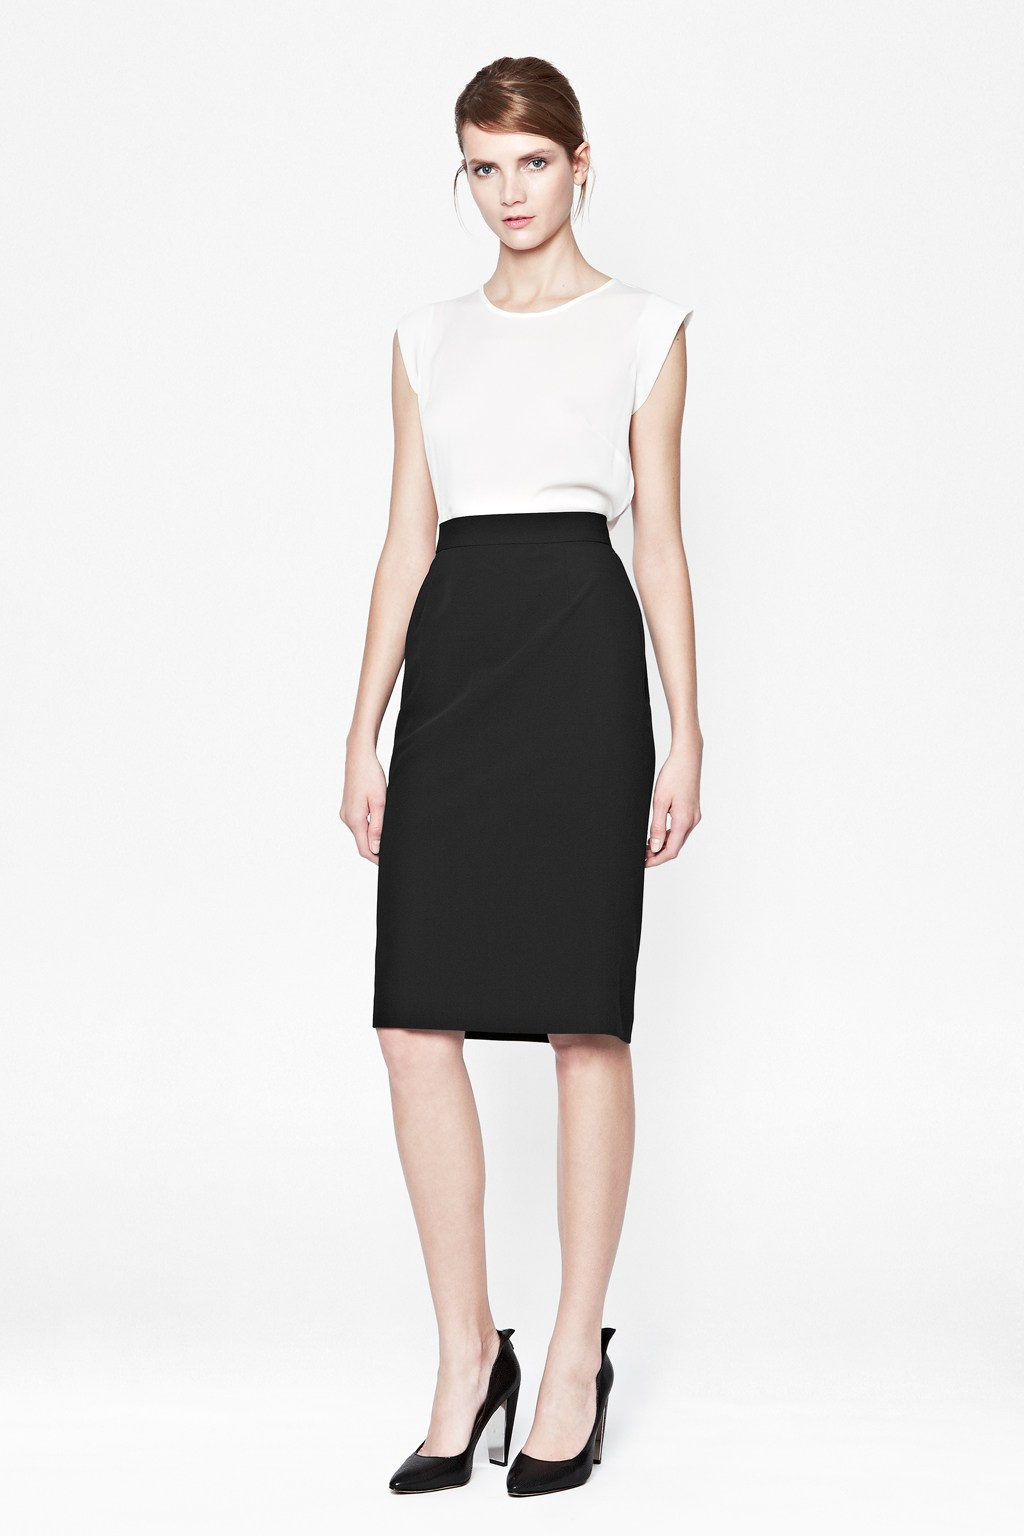 feather ruth classic pencil skirt sale connection